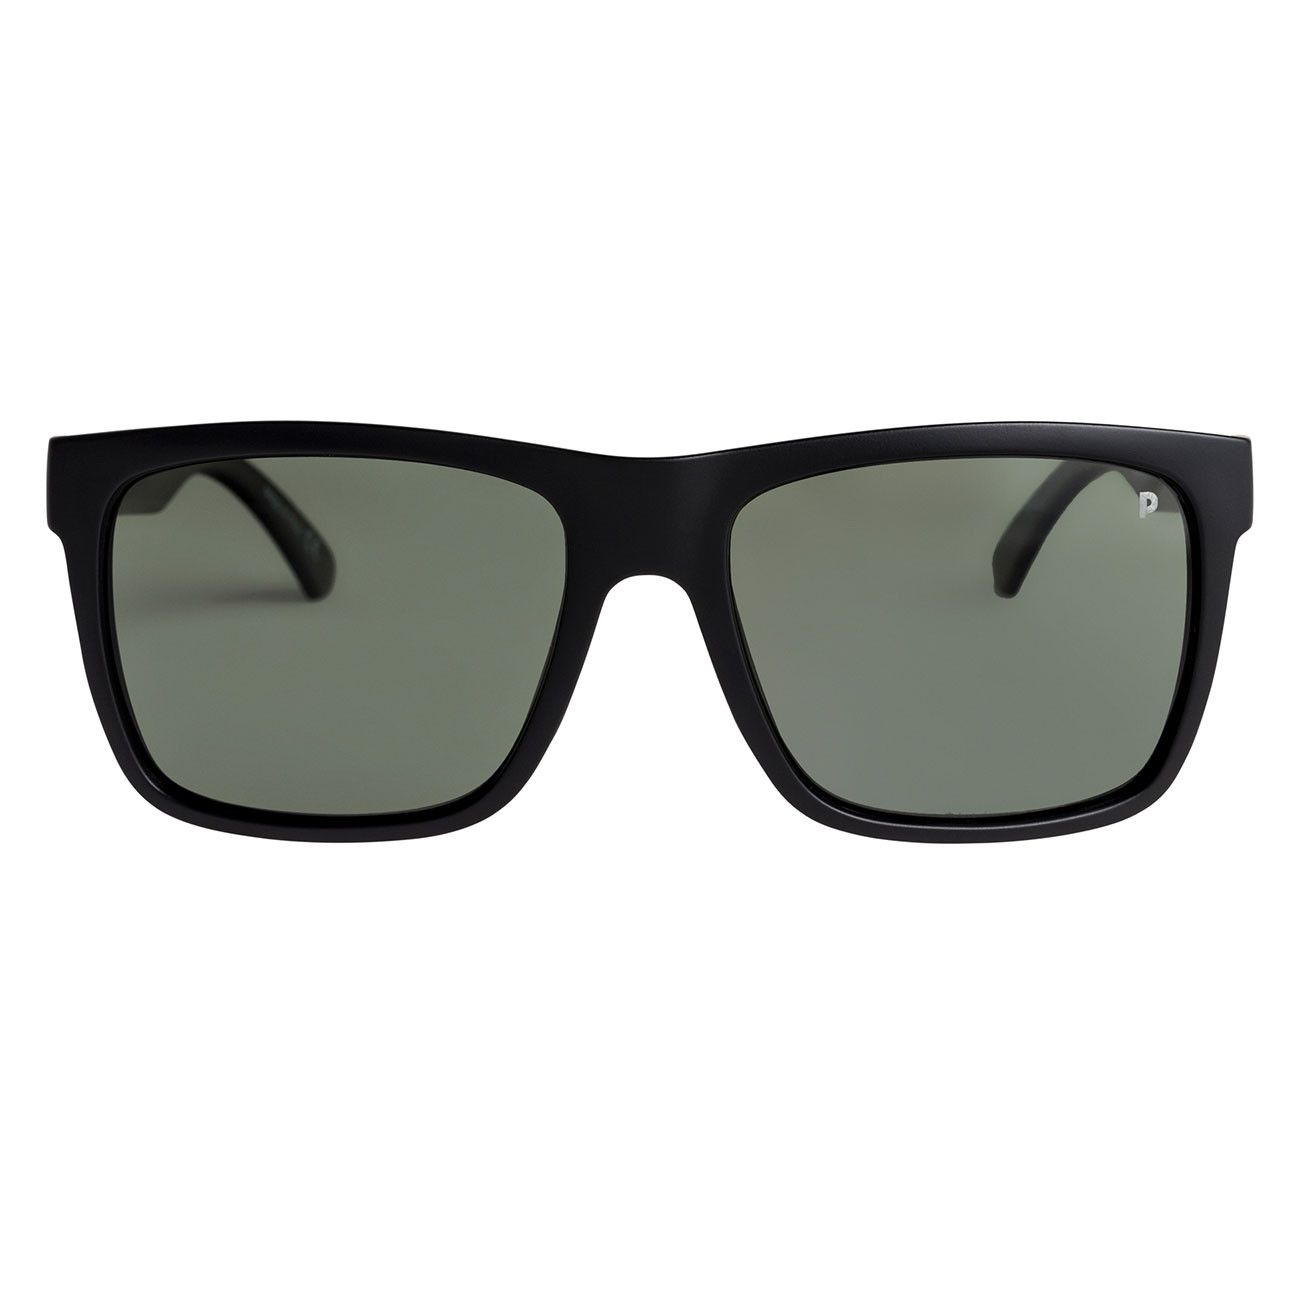 Sunglasses Quiksilver Charger Polarized Floatable